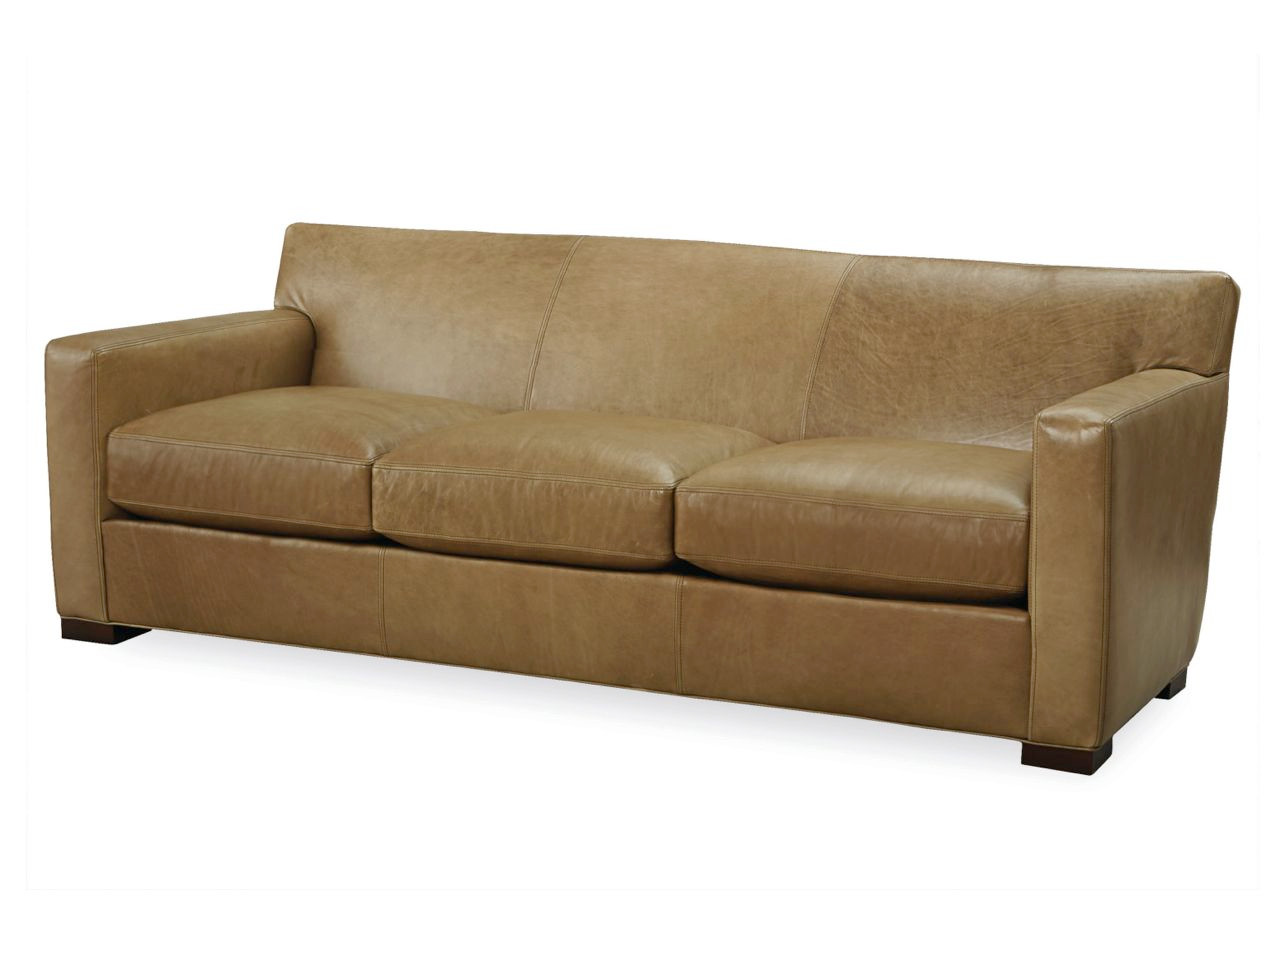 Theo Leather Sofa | Leather Sofas & Leather Couches ...